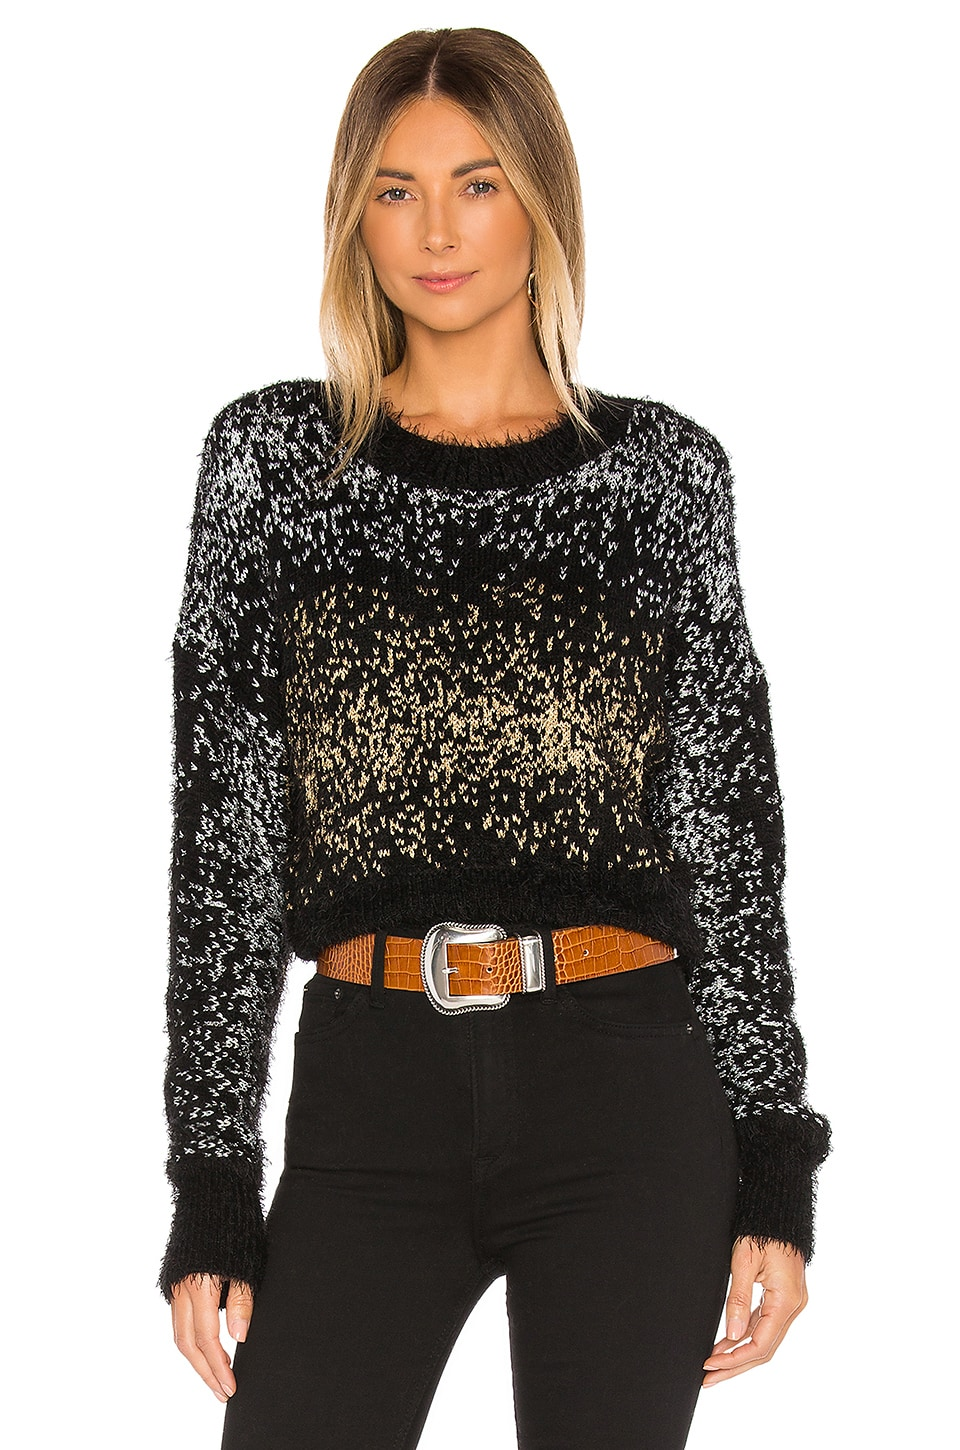 House of Harlow 1960 x REVOLVE Super Moon Sweater in Moon Shimmer